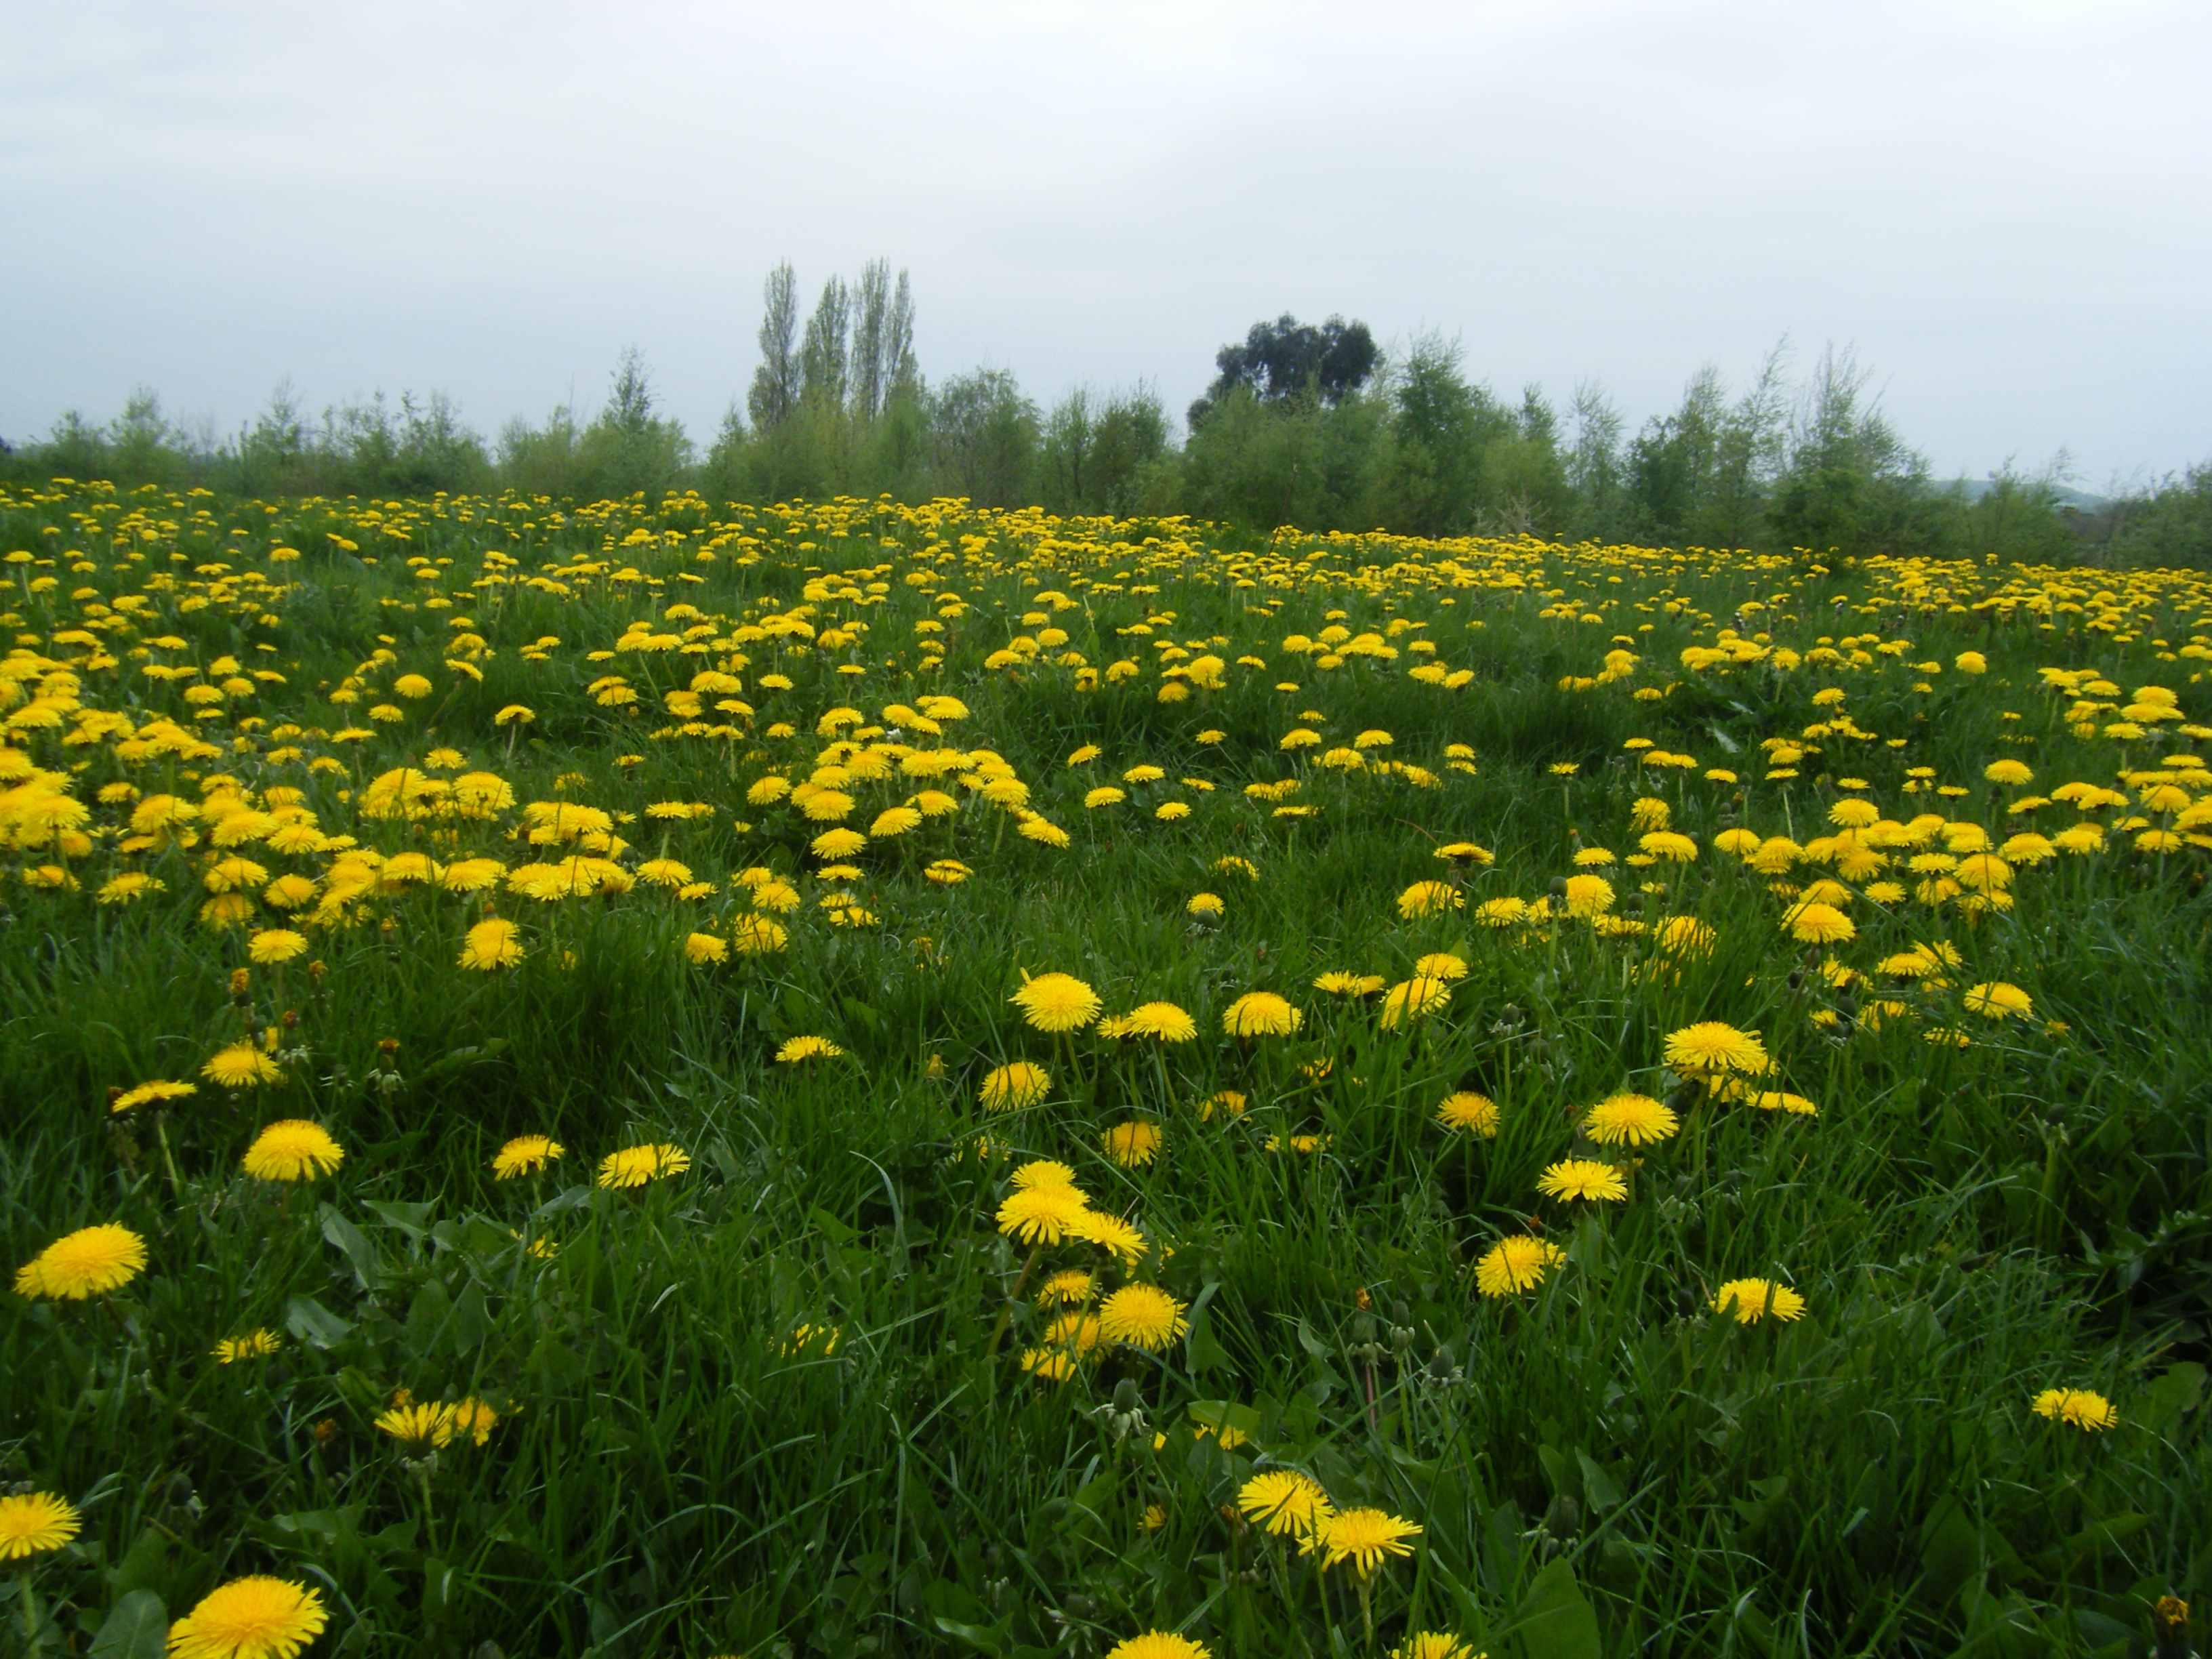 Field of dandelions at Warren House Park